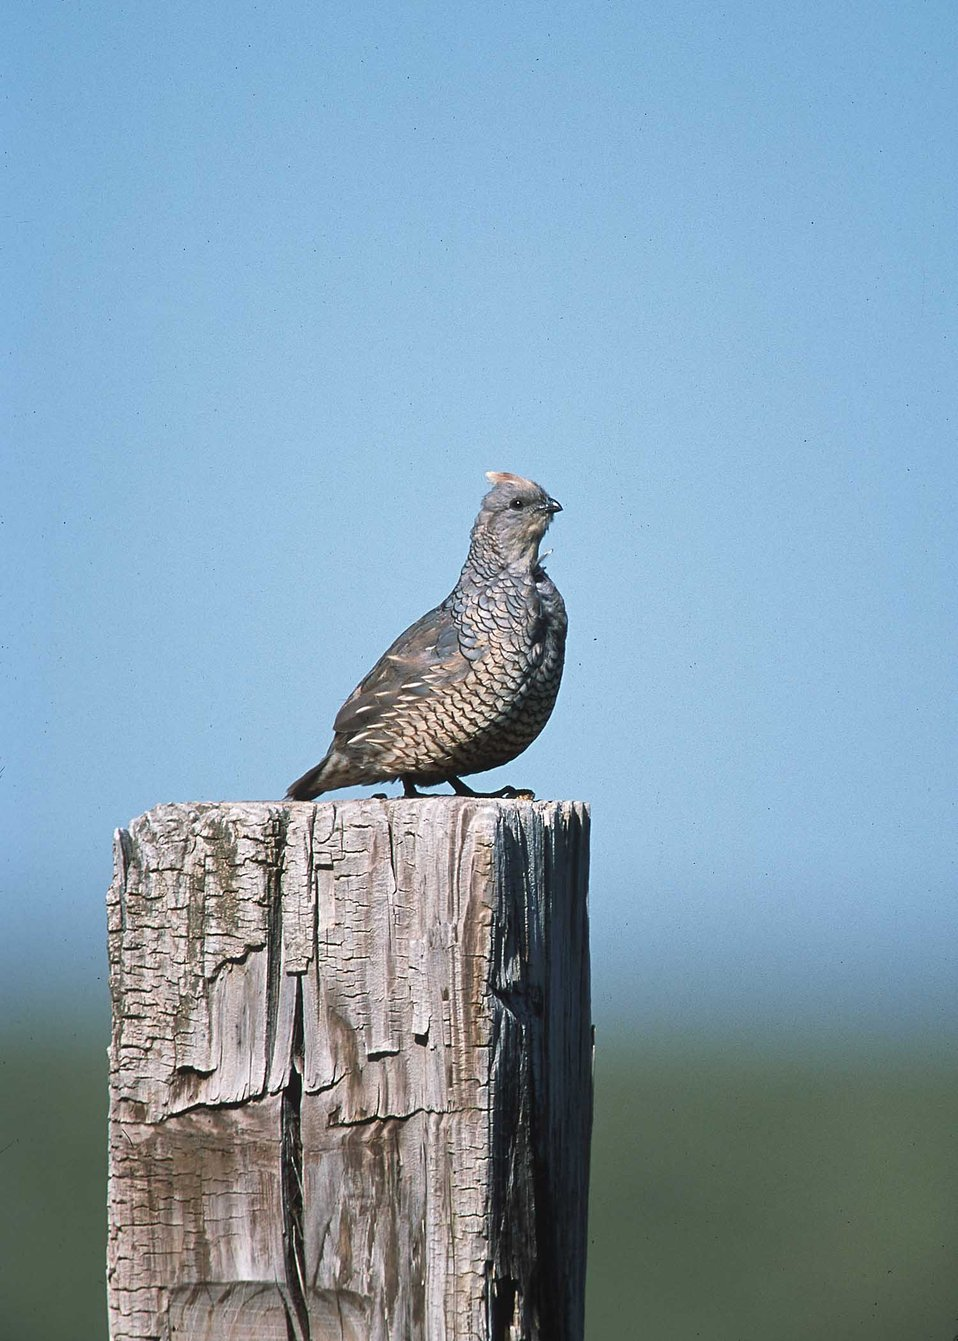 Scale quail perched on post in Eastern New Mexico ranch.